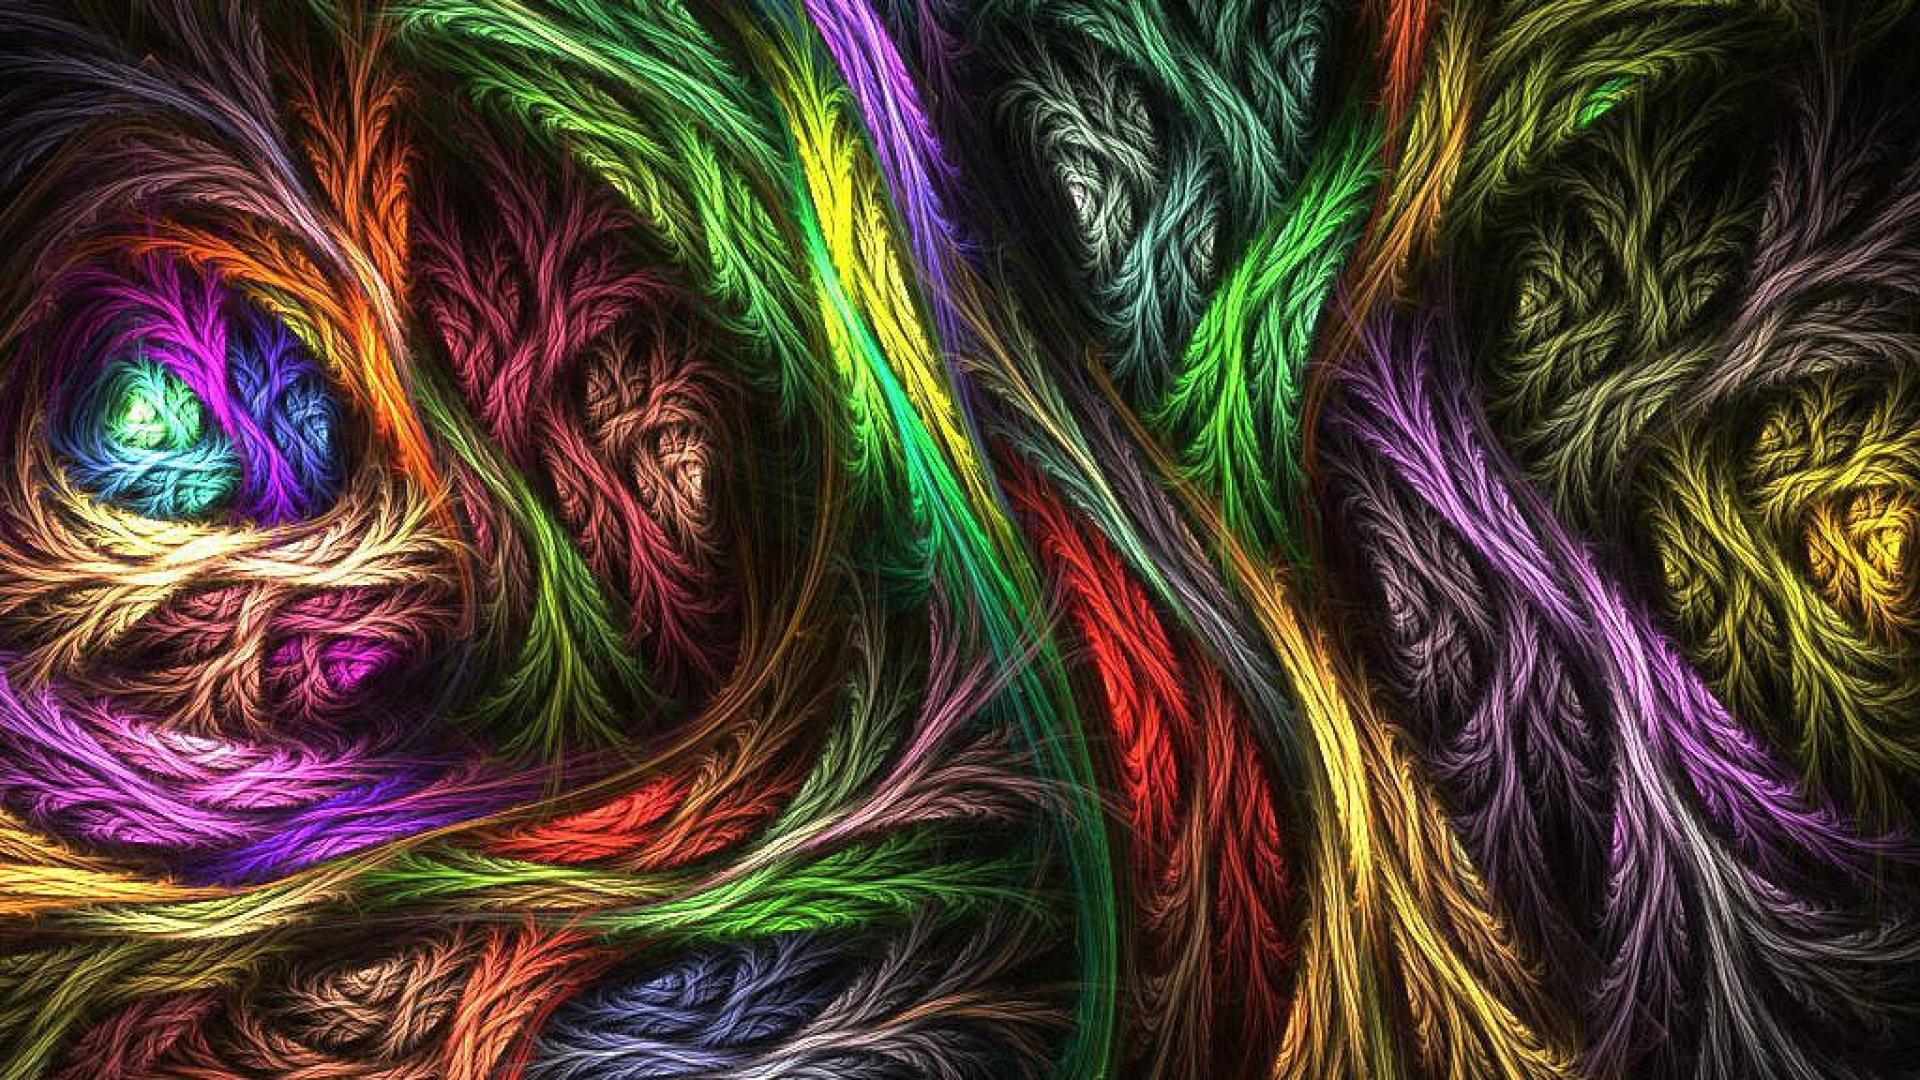 Psychedelic wool colors feathery   28006   High Quality and 1920x1080